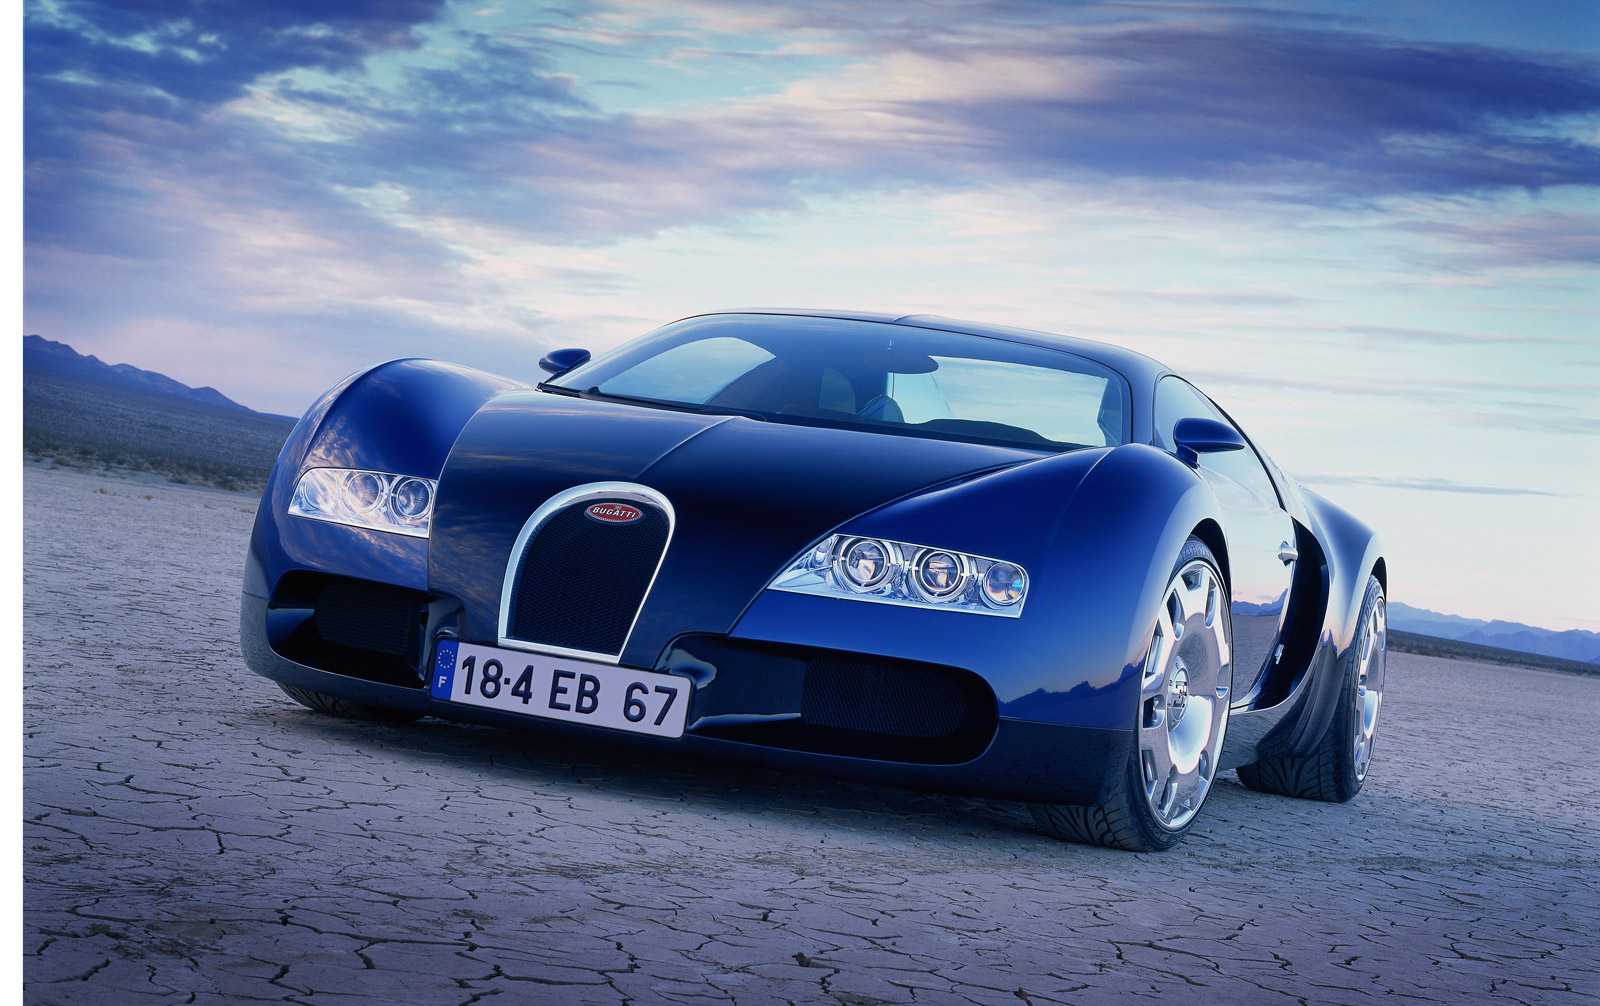 Original Bugatti Veyron Eb 18 4 Concept Headed To Salon HD Wallpapers Download free images and photos [musssic.tk]